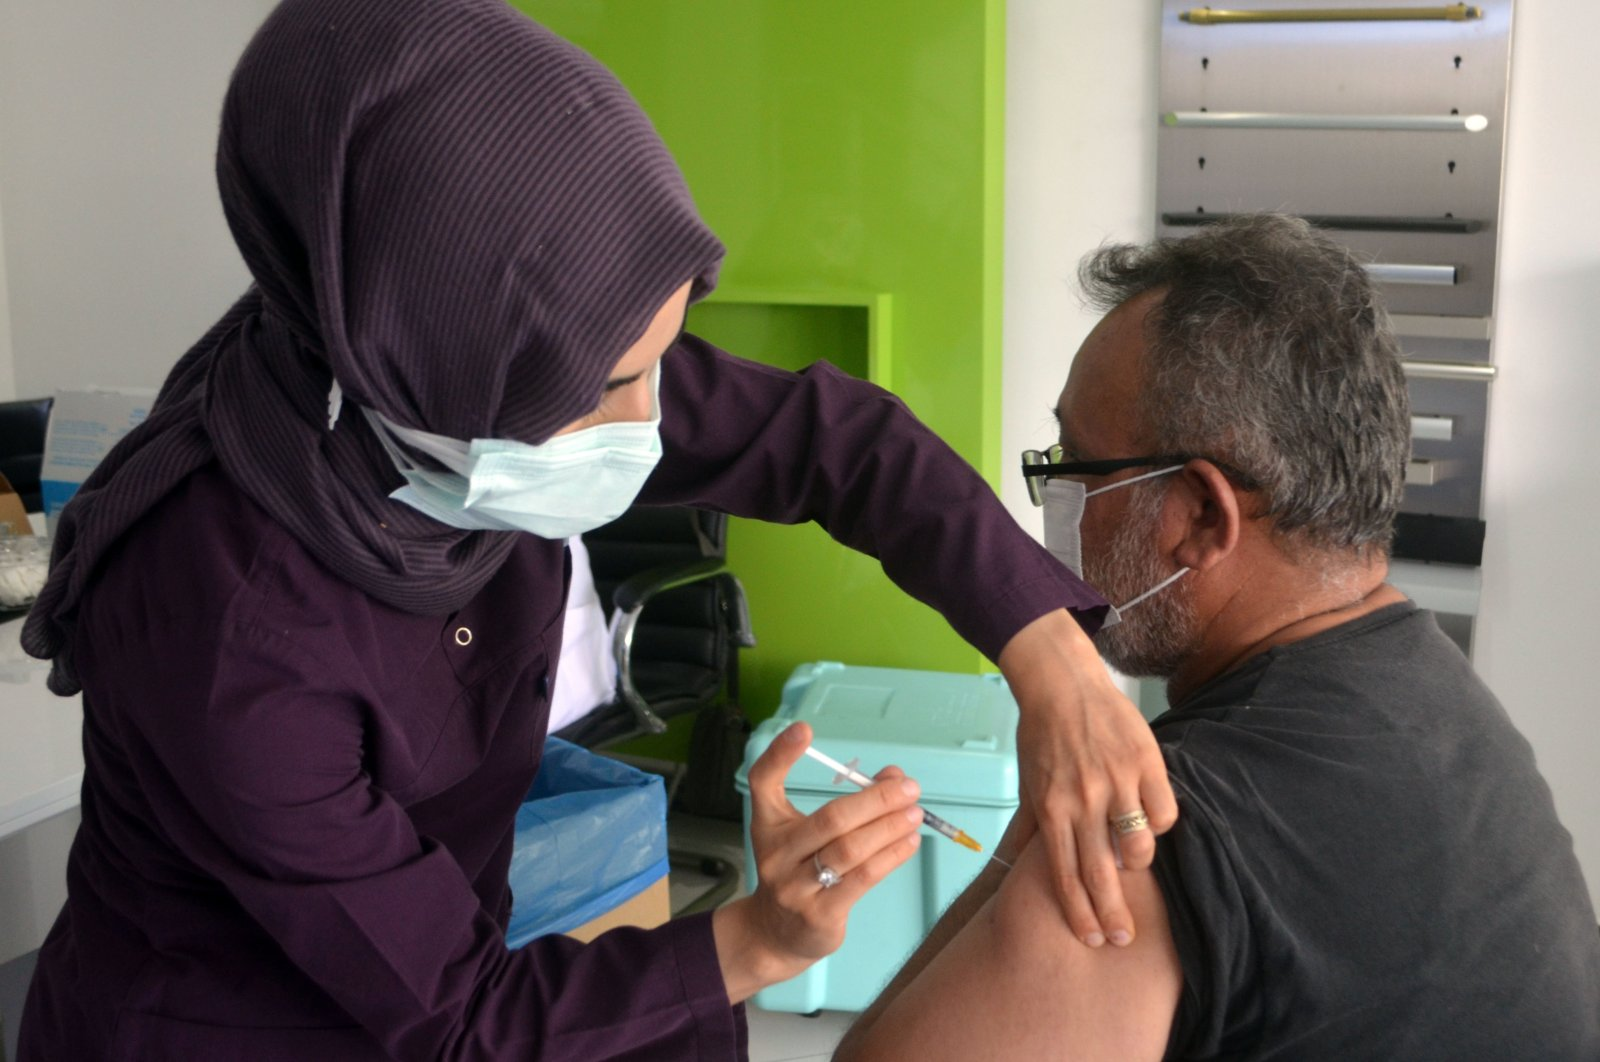 A nurse administers a COVID-19 vaccine jab to a citizen at a hospital in Turkey's northern Amasya province, the province with the second-highest vaccination rate, Amasya, Turkey, June 26, 2021. (AA Photo)